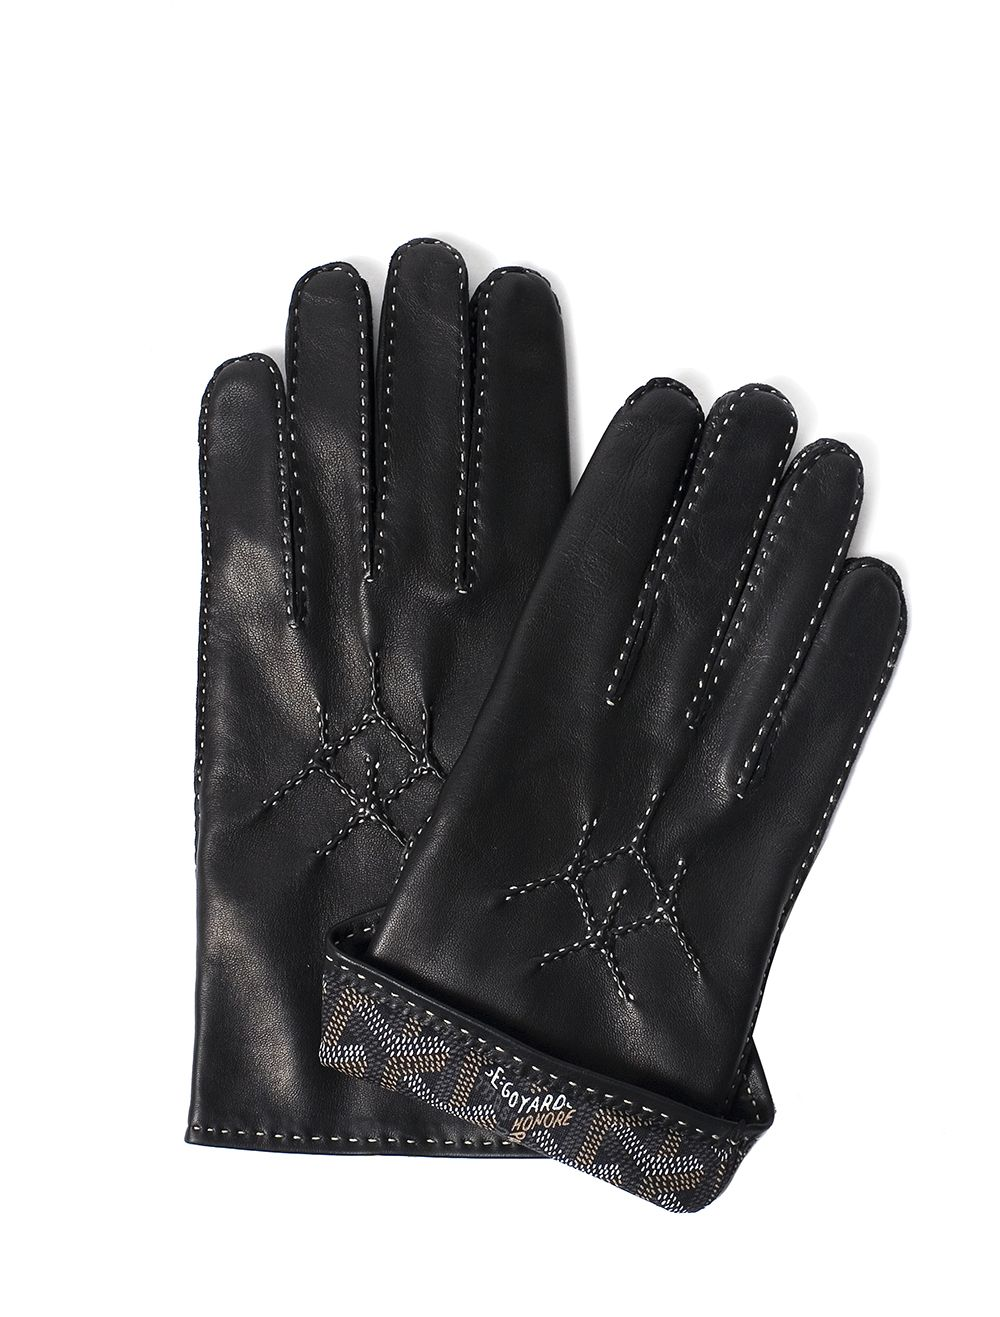 1a4d5715d0f Don t forget your gloves... try these from our new Goyard boutique on  Goodman s first floor. 212 339 3221